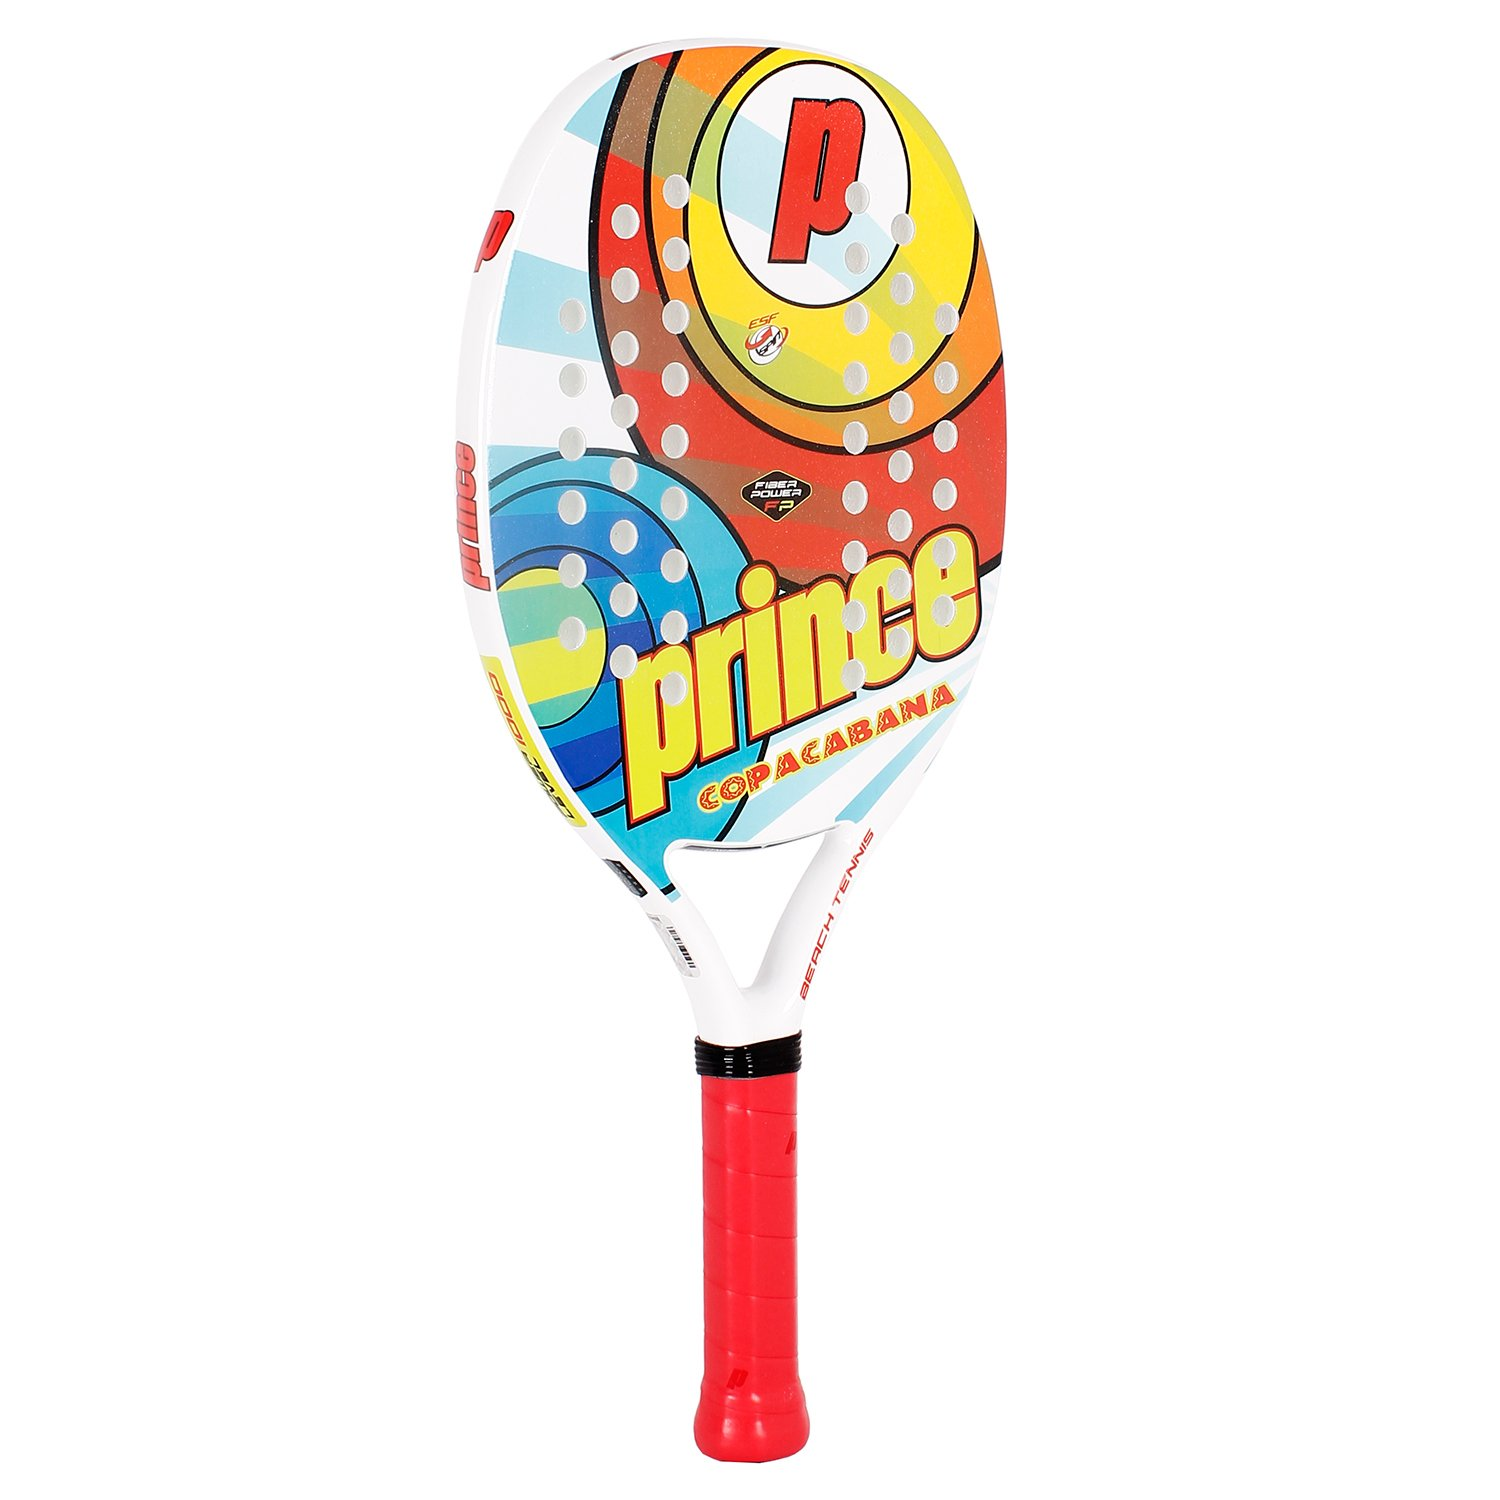 PRINCE Pala Beach Tennis Warrior Copacabana: Amazon.es: Deportes y ...